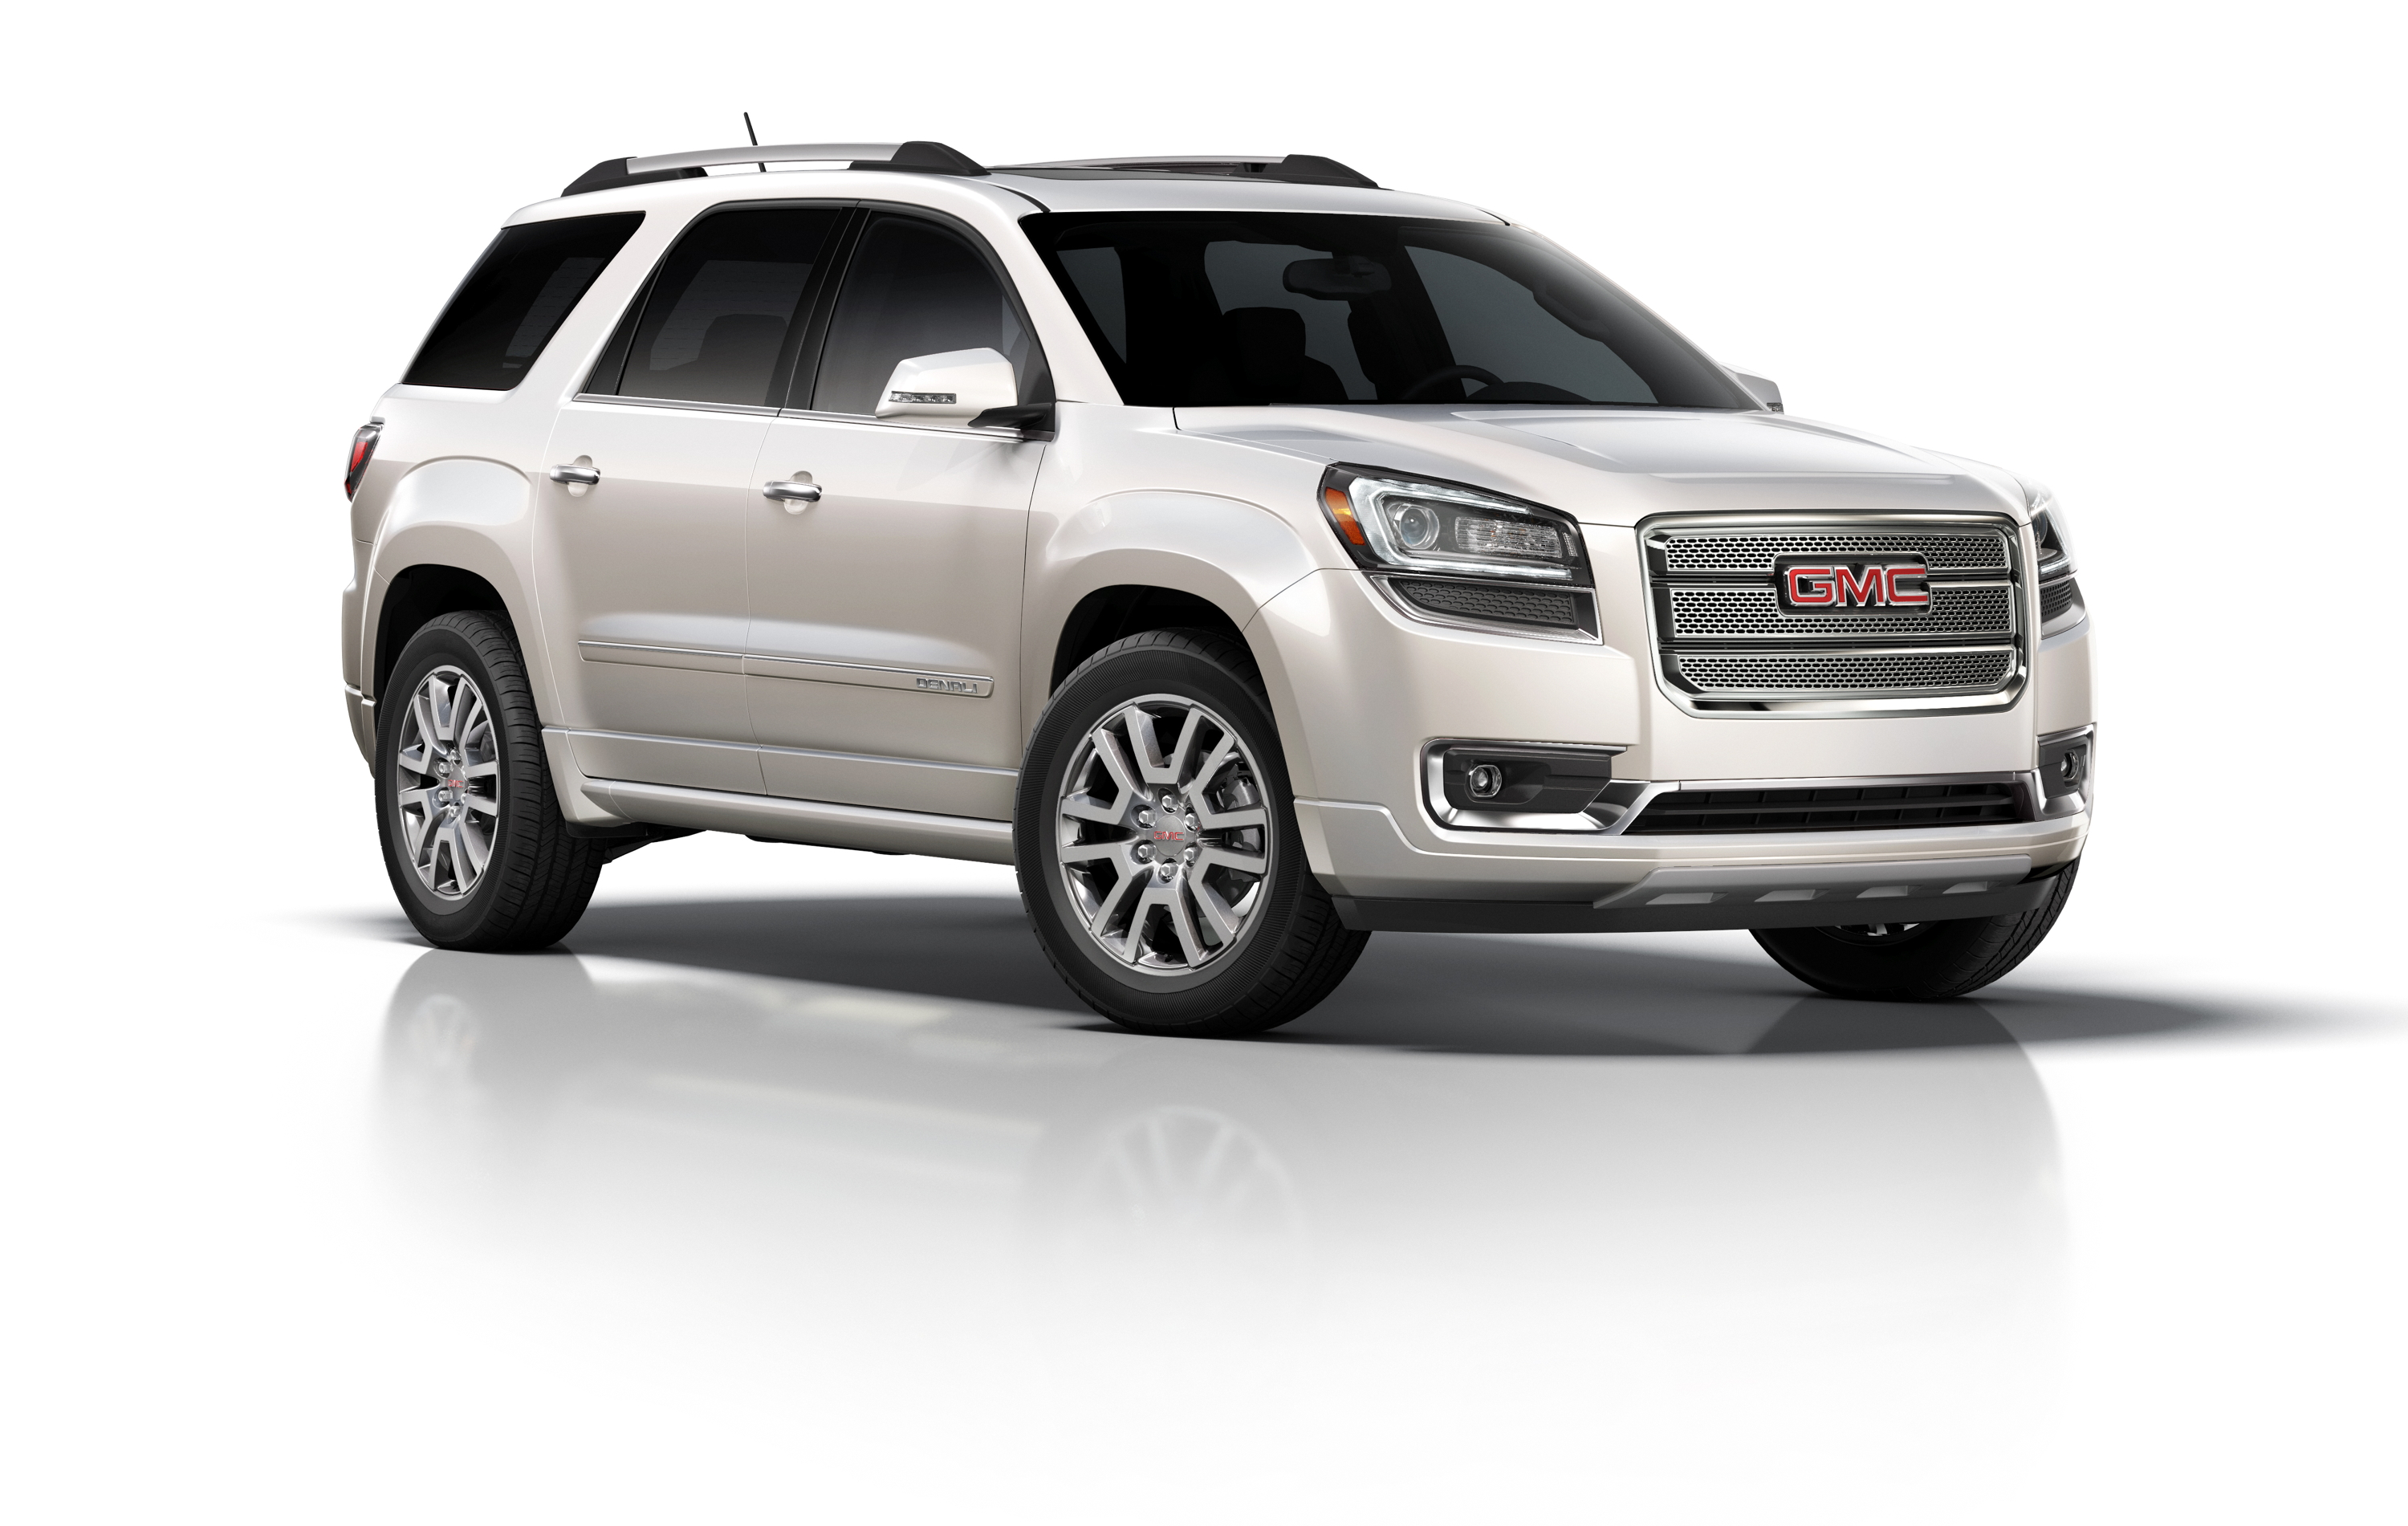 mascoutah in sale details sierra for at network gmc bergheger slt il auto inventory